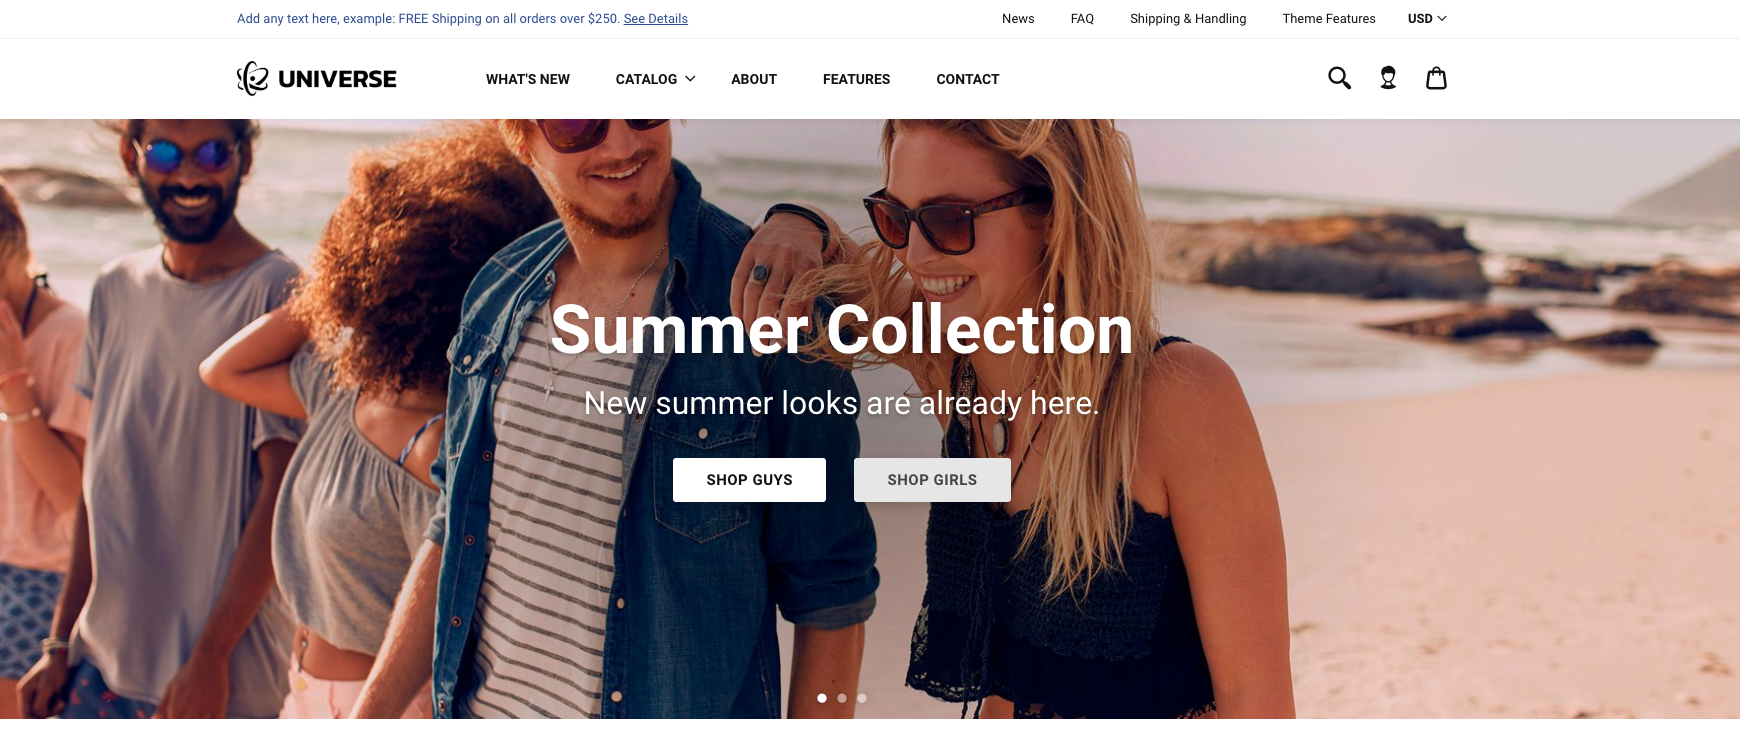 2a29feb6e Best Shopify Themes for Makers and Small Manufacturers 2019